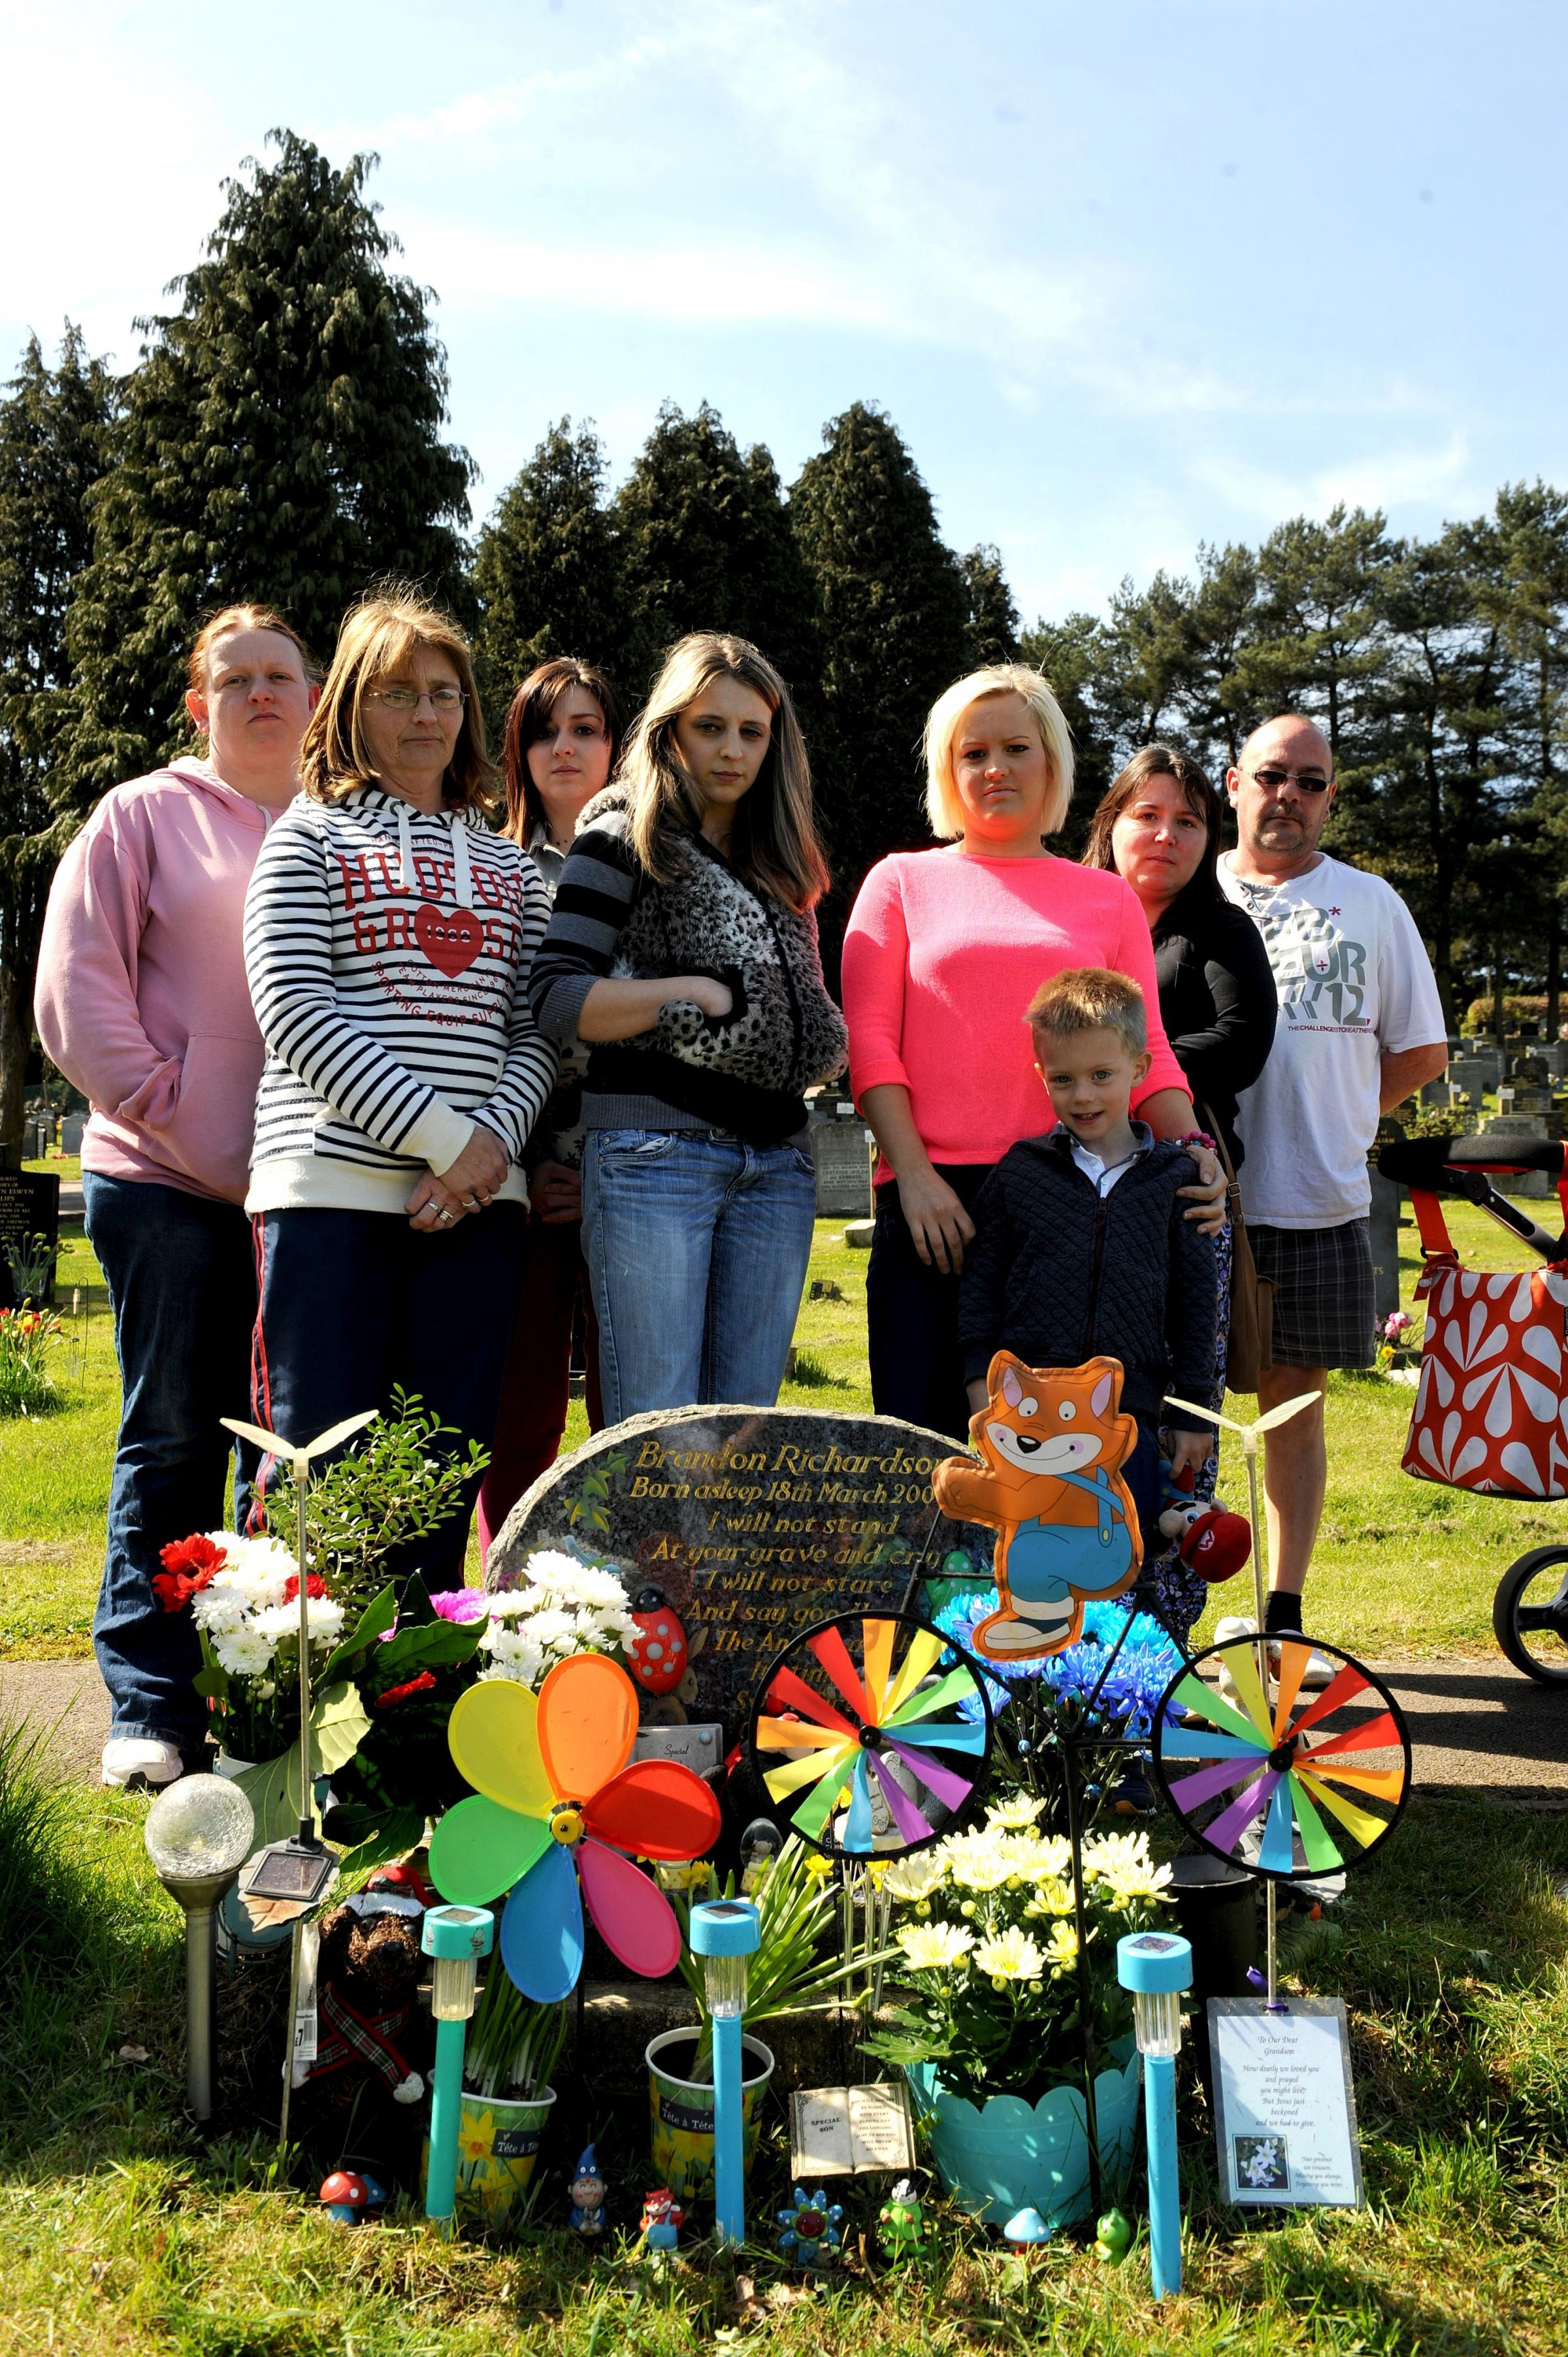 Families hit out at Torfaen graveyard rules